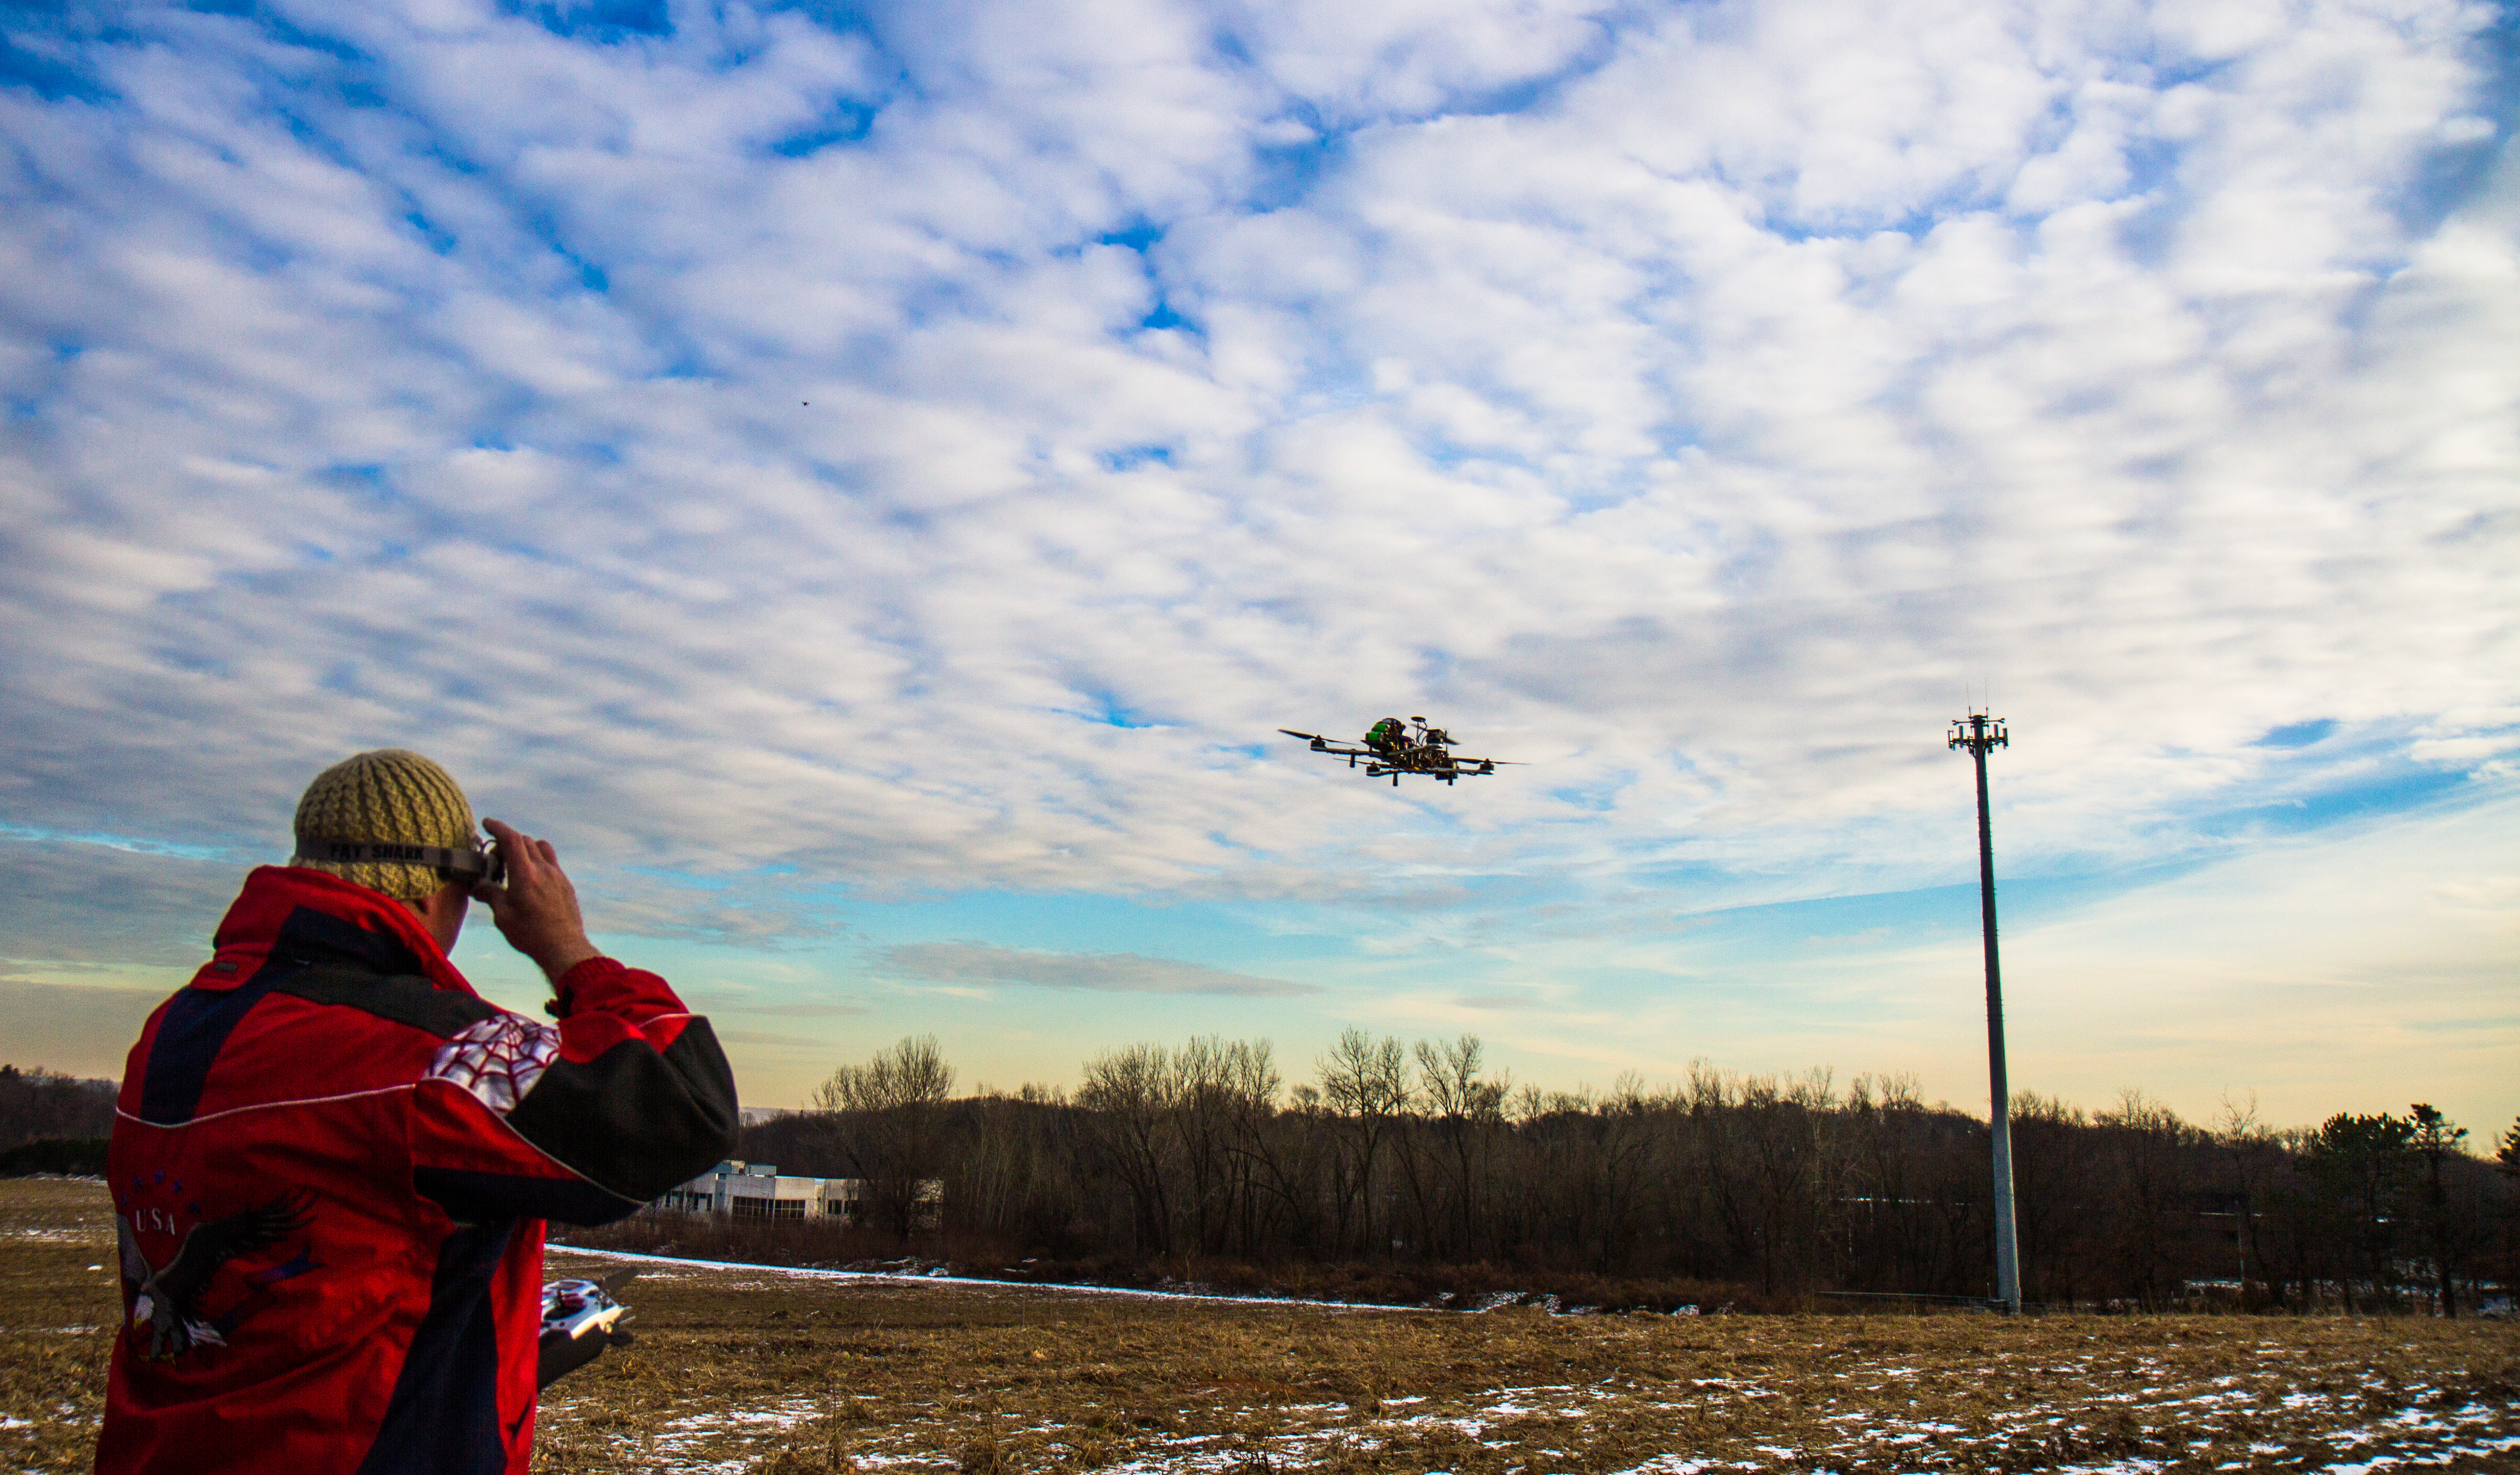 Sorry Amazon, Delivery Drones Still Grounded Under New FAA Rules